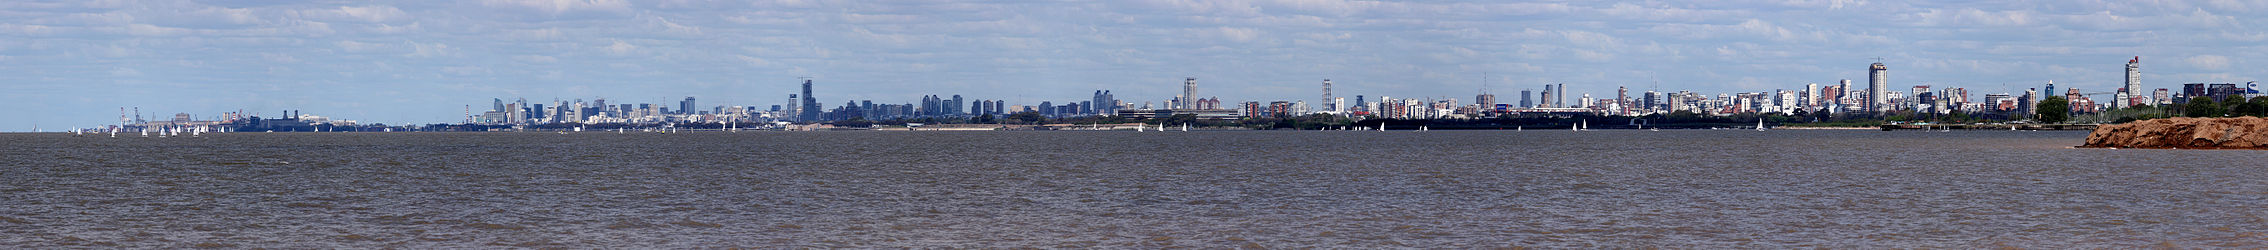 Panorama van de skyline van Buenos Aires genomen vanaf Vicente Lpez. Van links naar rechts, Puerto Madero, Retiro, Recoleta, Palermo, Belgrano en Nuez.